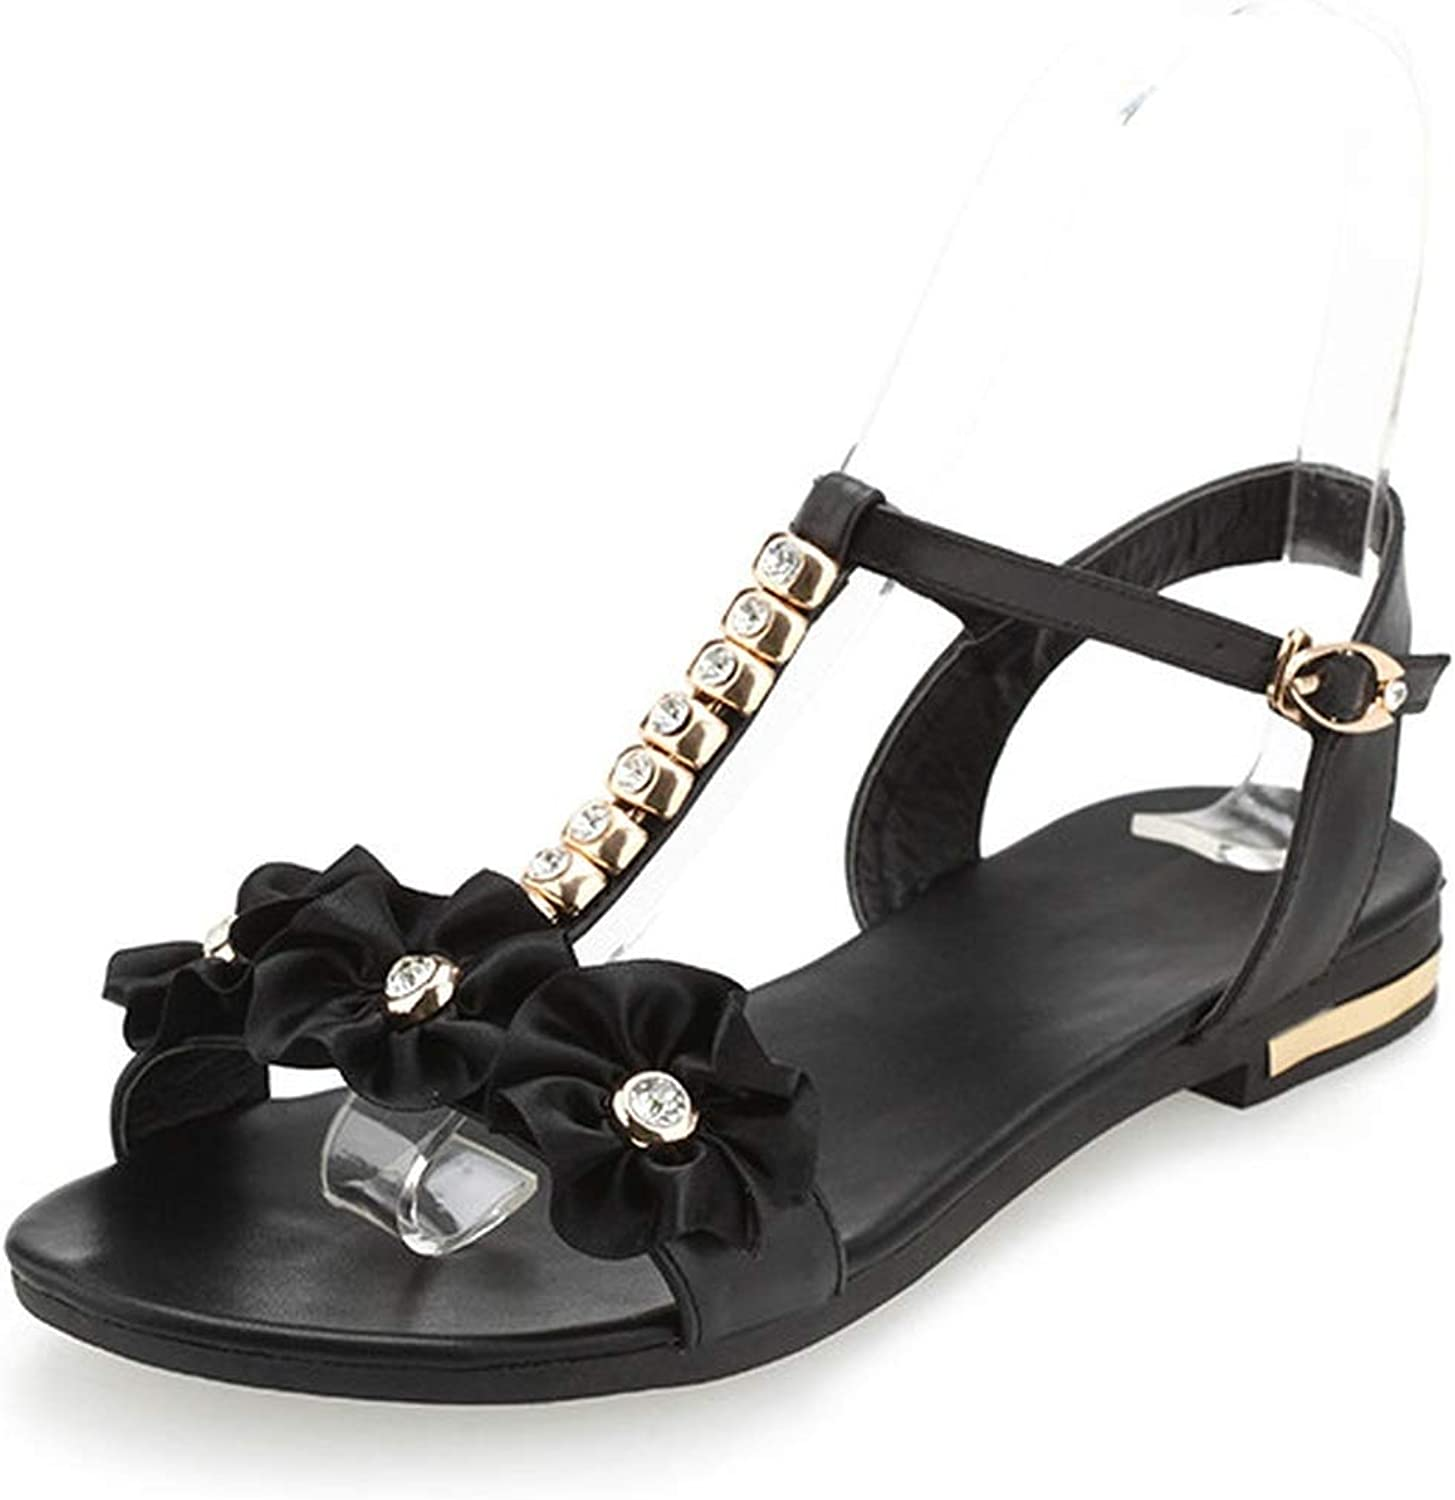 Women Sandals Buckle Pu Leather Women shoes Square Heel Casual All Match Black Women Sandals 34-43